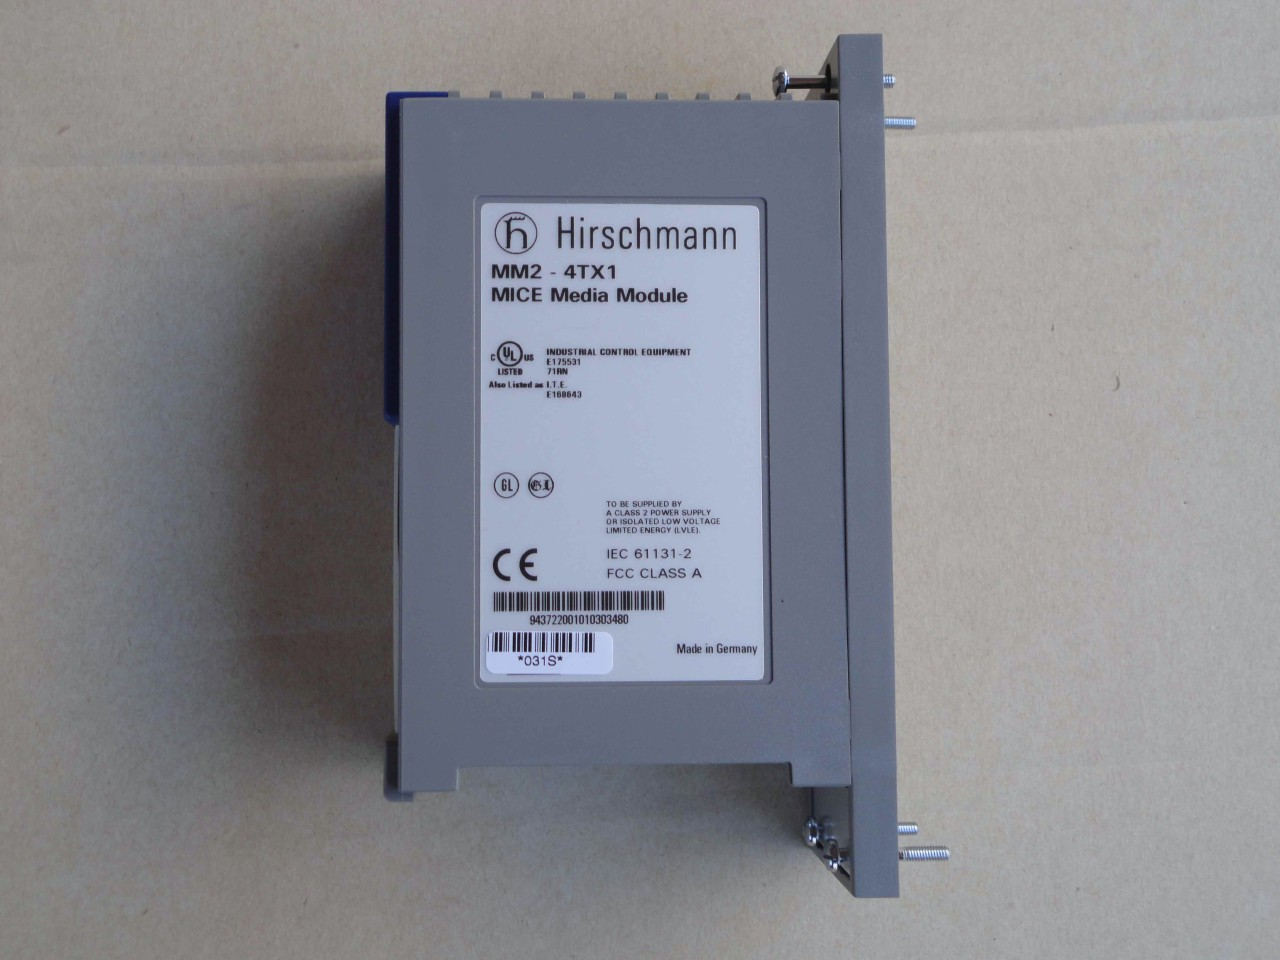 Hirschmann-MM2-4TX1-Mice-Media-Module